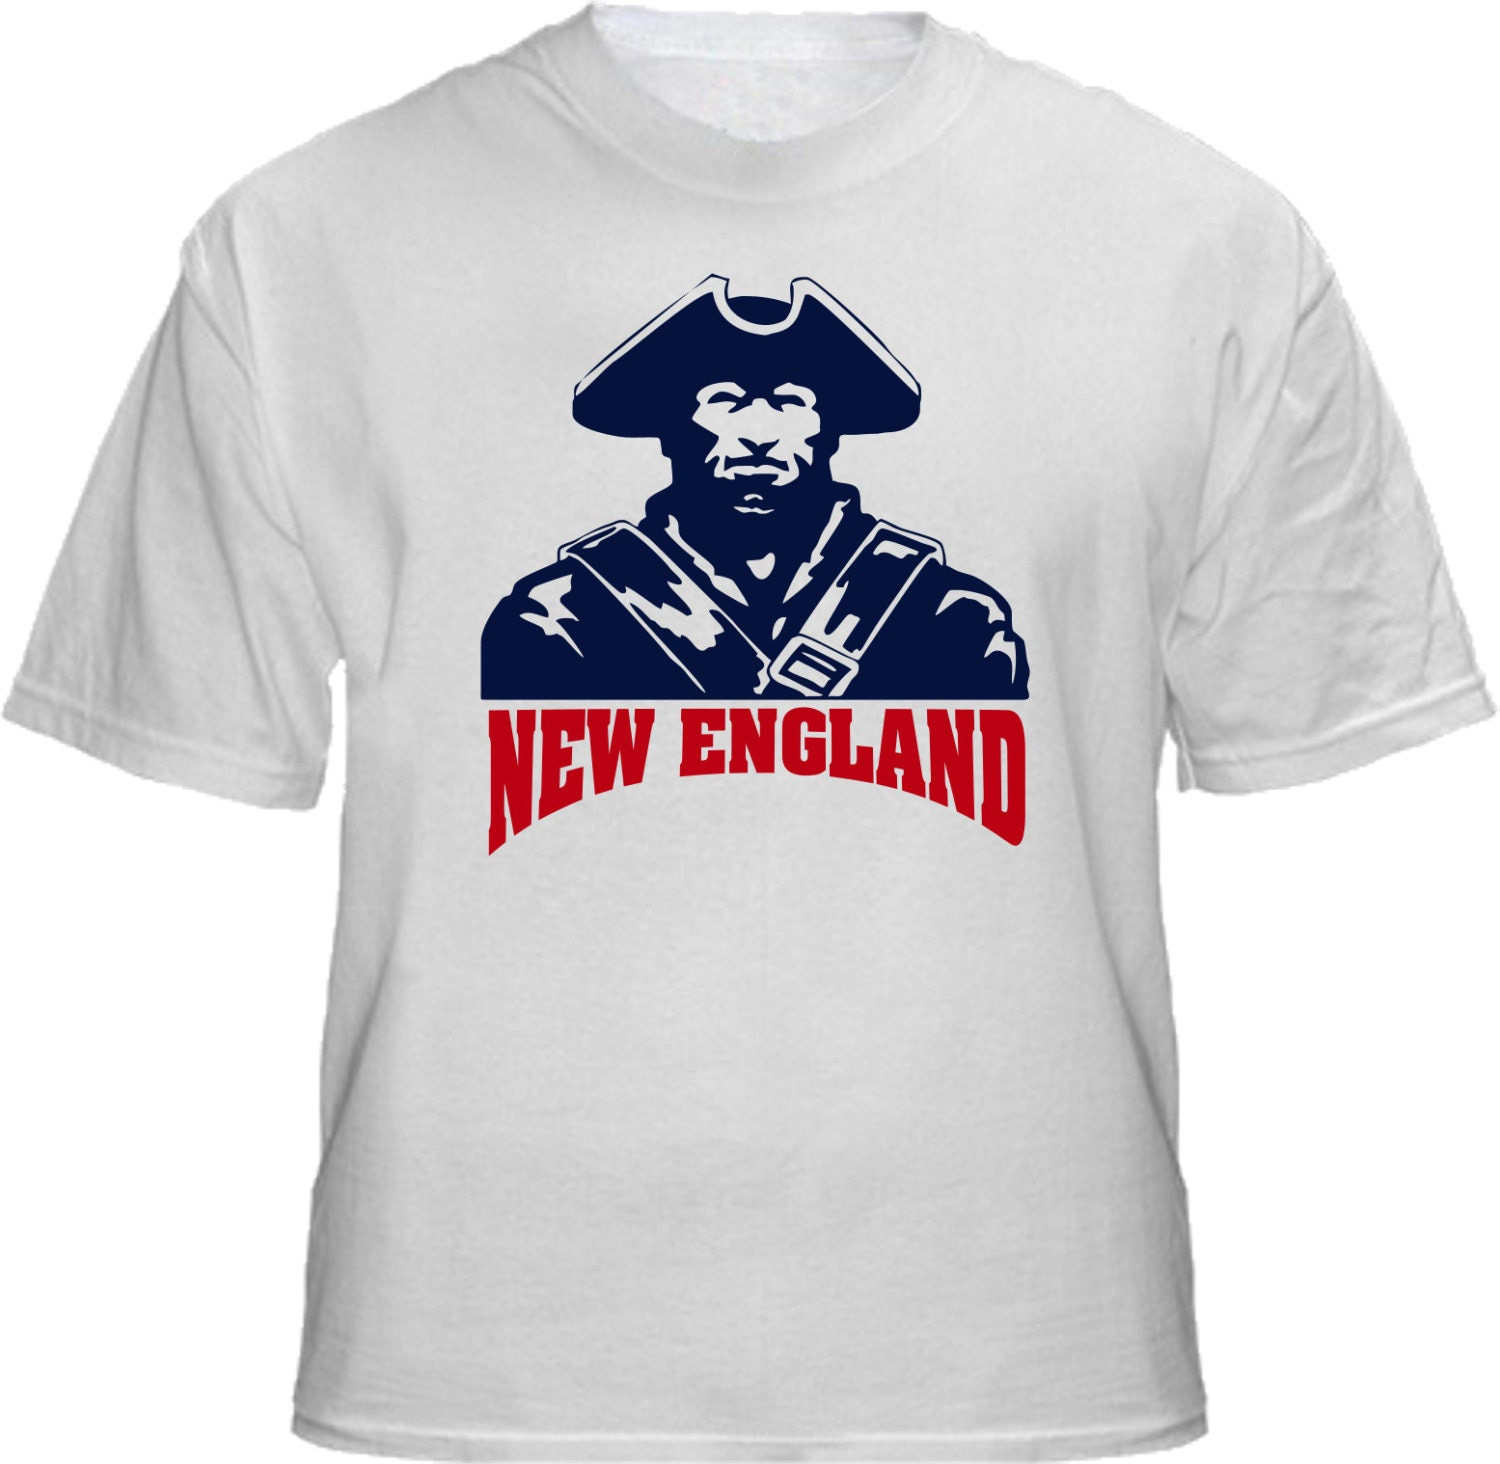 New England Patriots Shirt Football Shirt By 86levelstdesign: new england patriots shirts